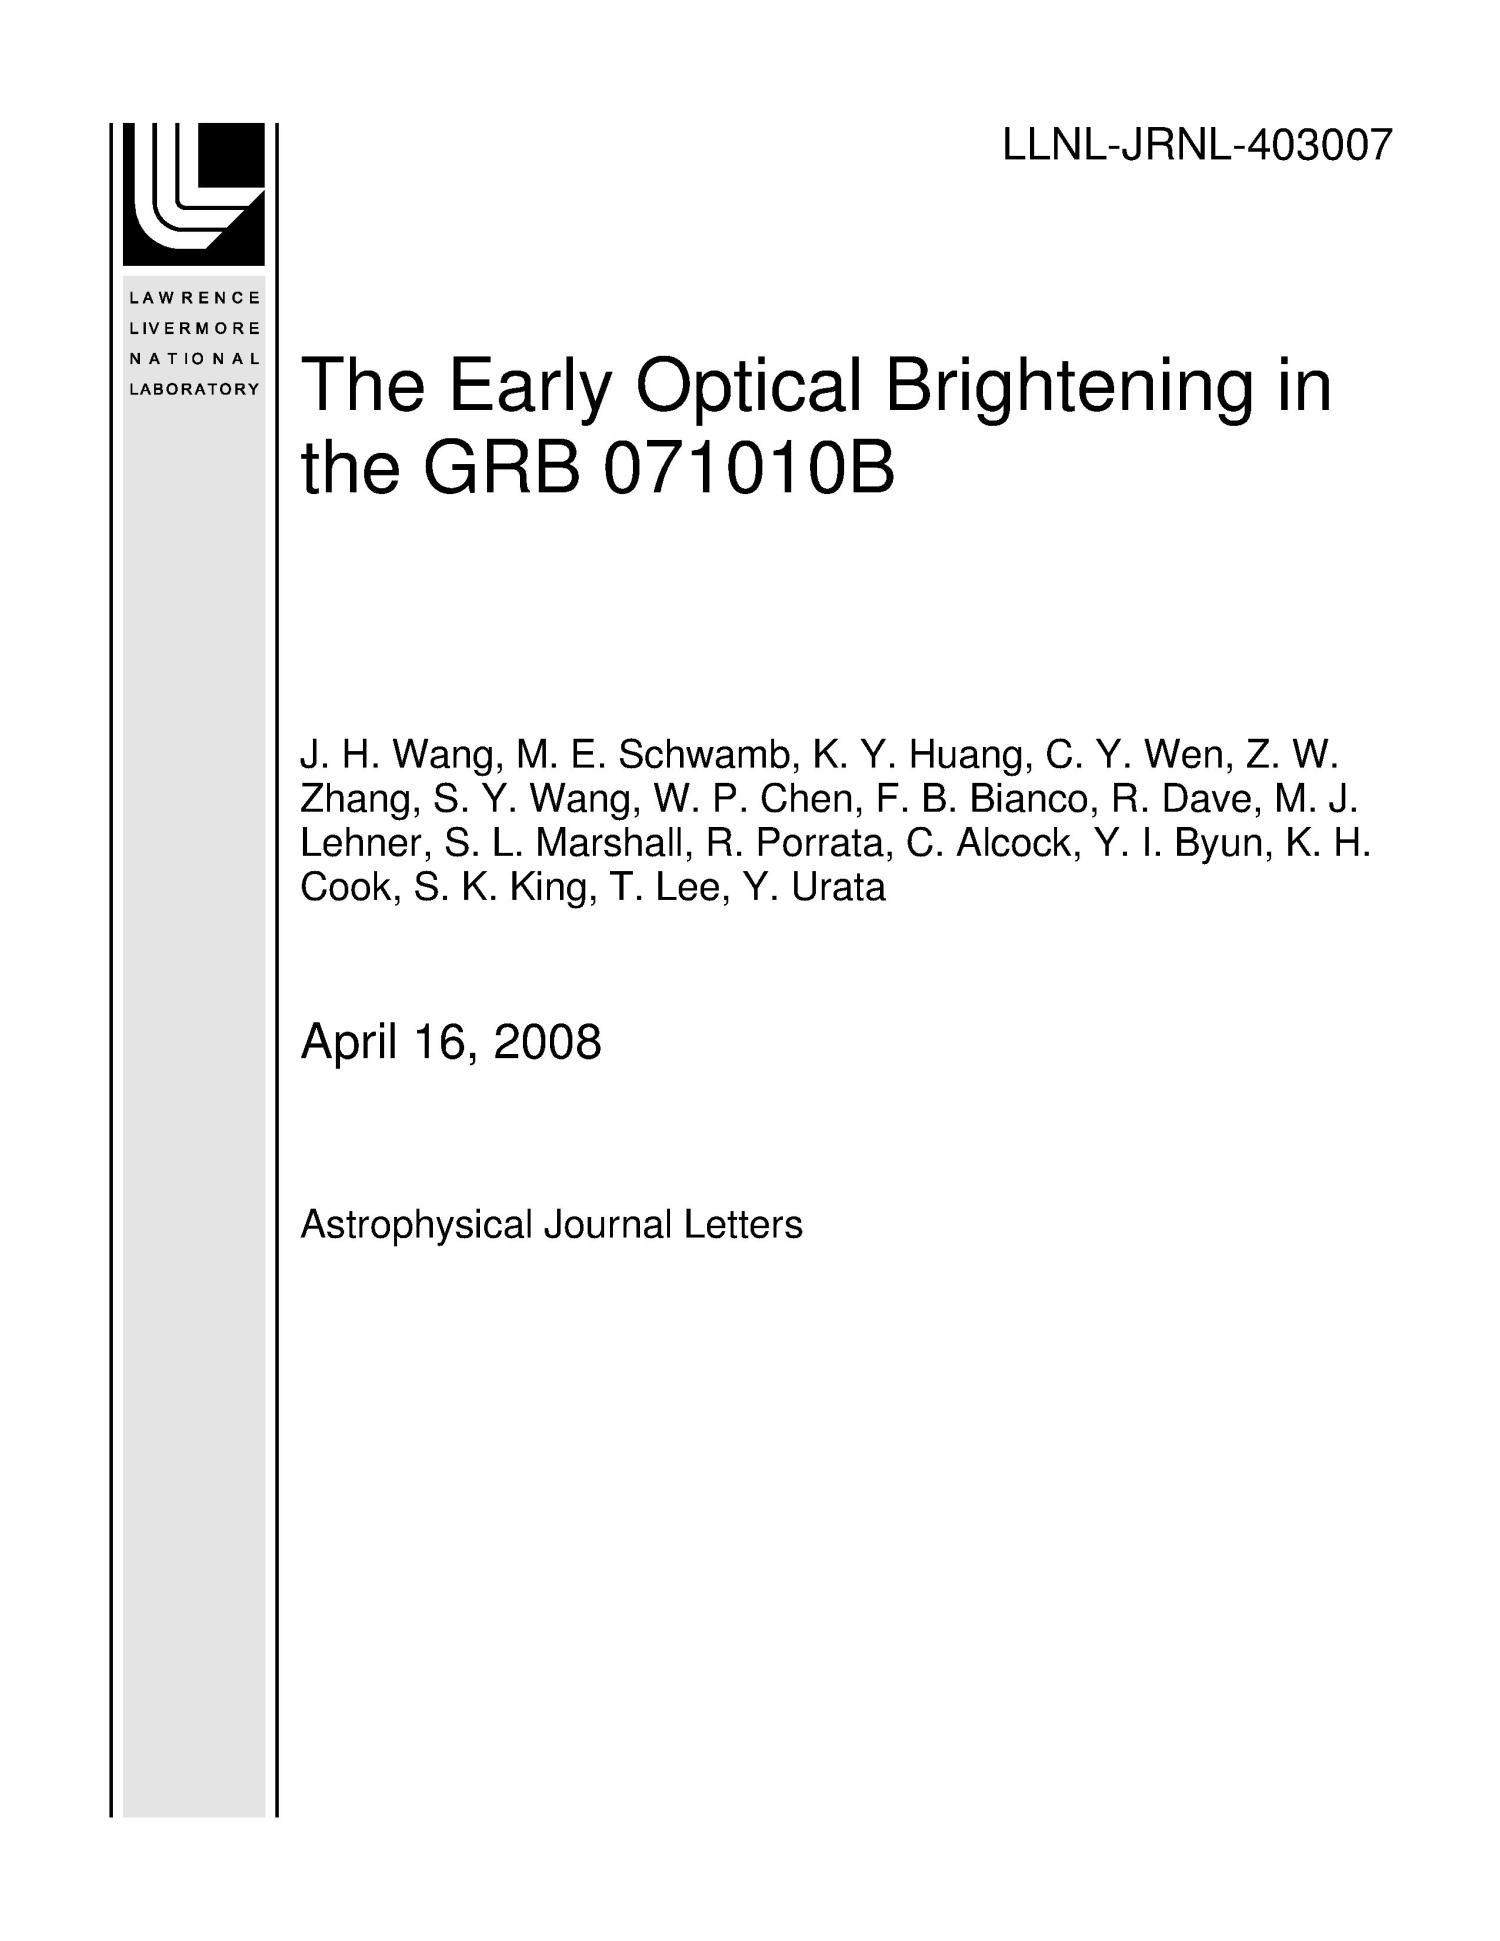 The Early Optical Brightening in the GRB 071010B                                                                                                      [Sequence #]: 1 of 17